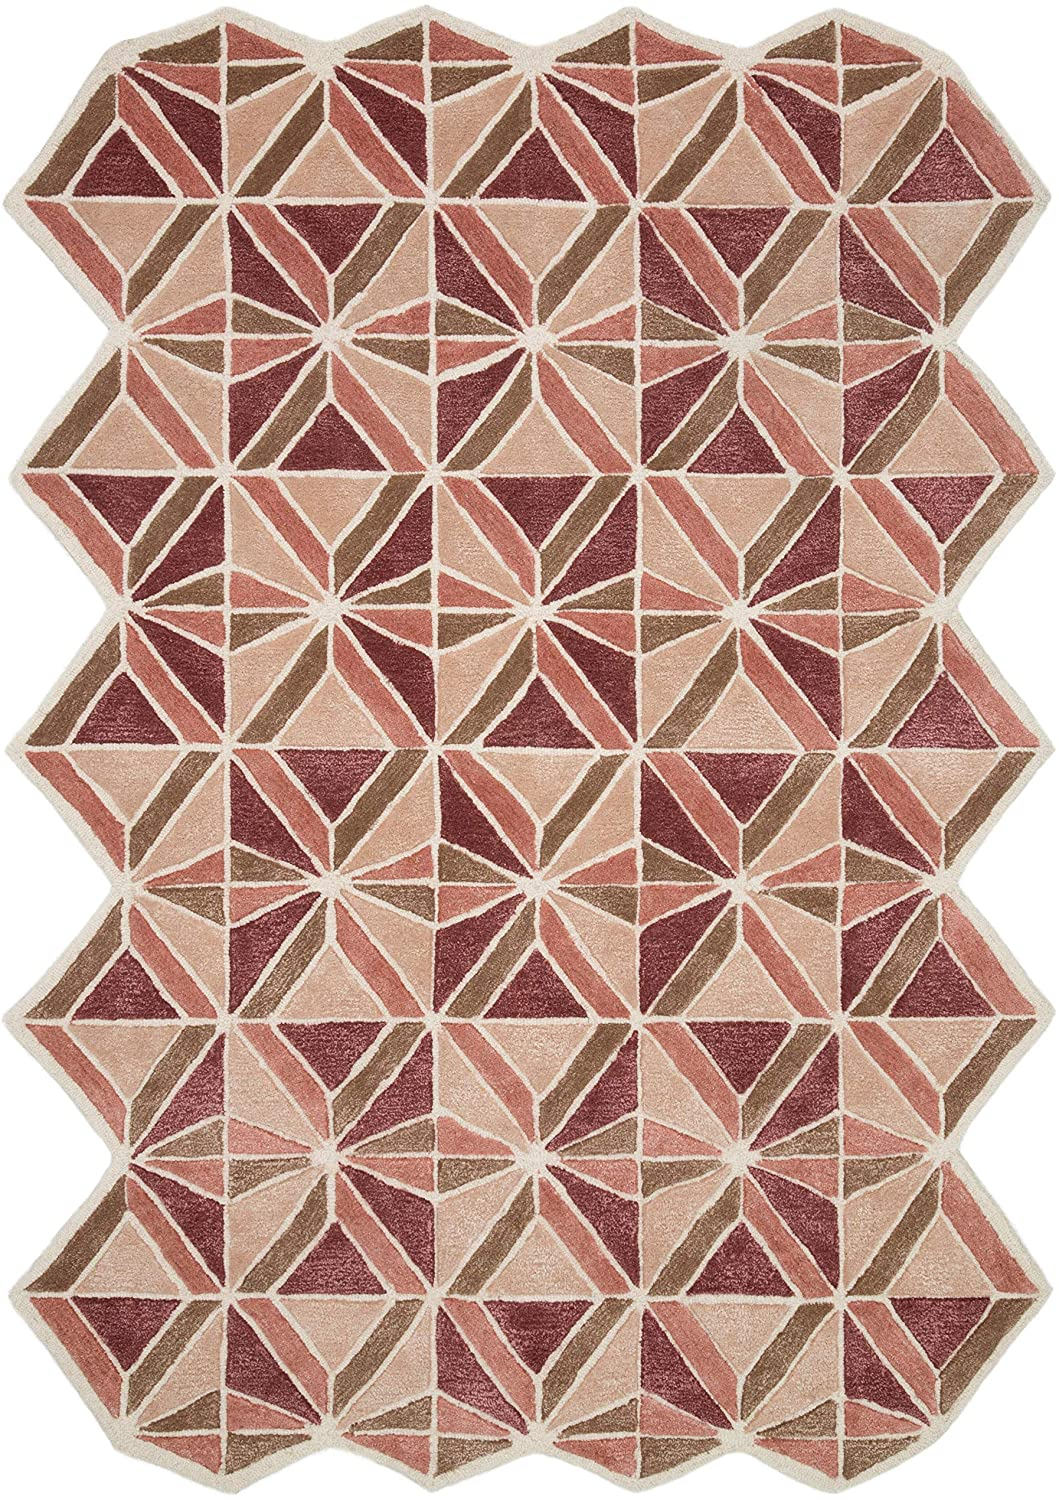 Now House by Jonathan Adler Facet Collection Area Rug, 3'6